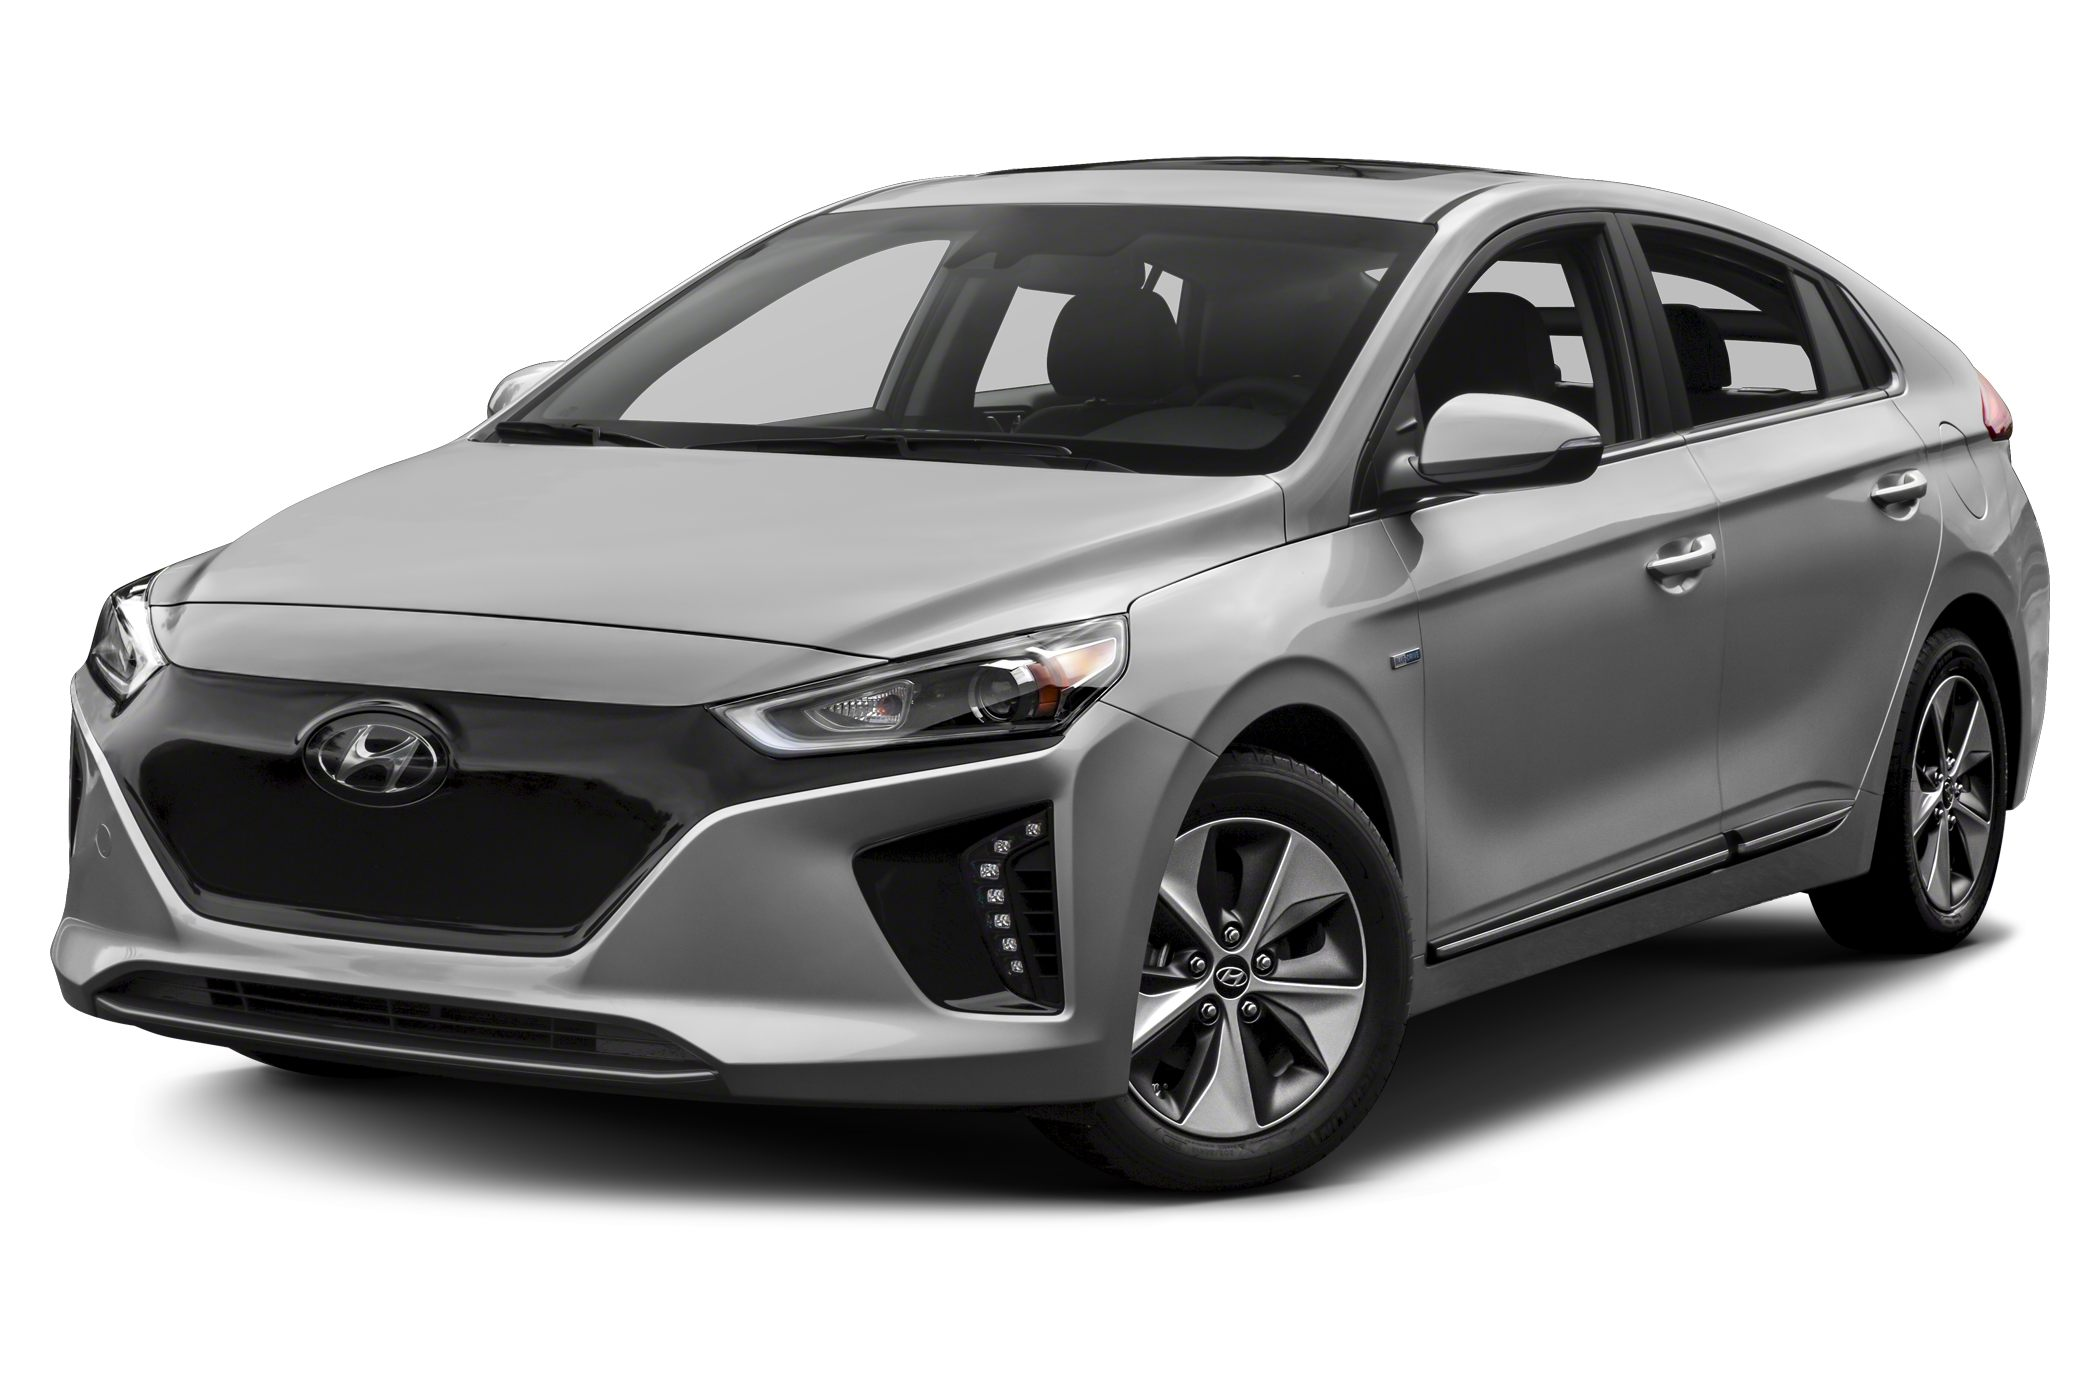 Hyundai Canada Incentives for the new 2017 Hyundai Ioniq EV Fully Electric Vehicle in Milton, Toronto, and the GTA